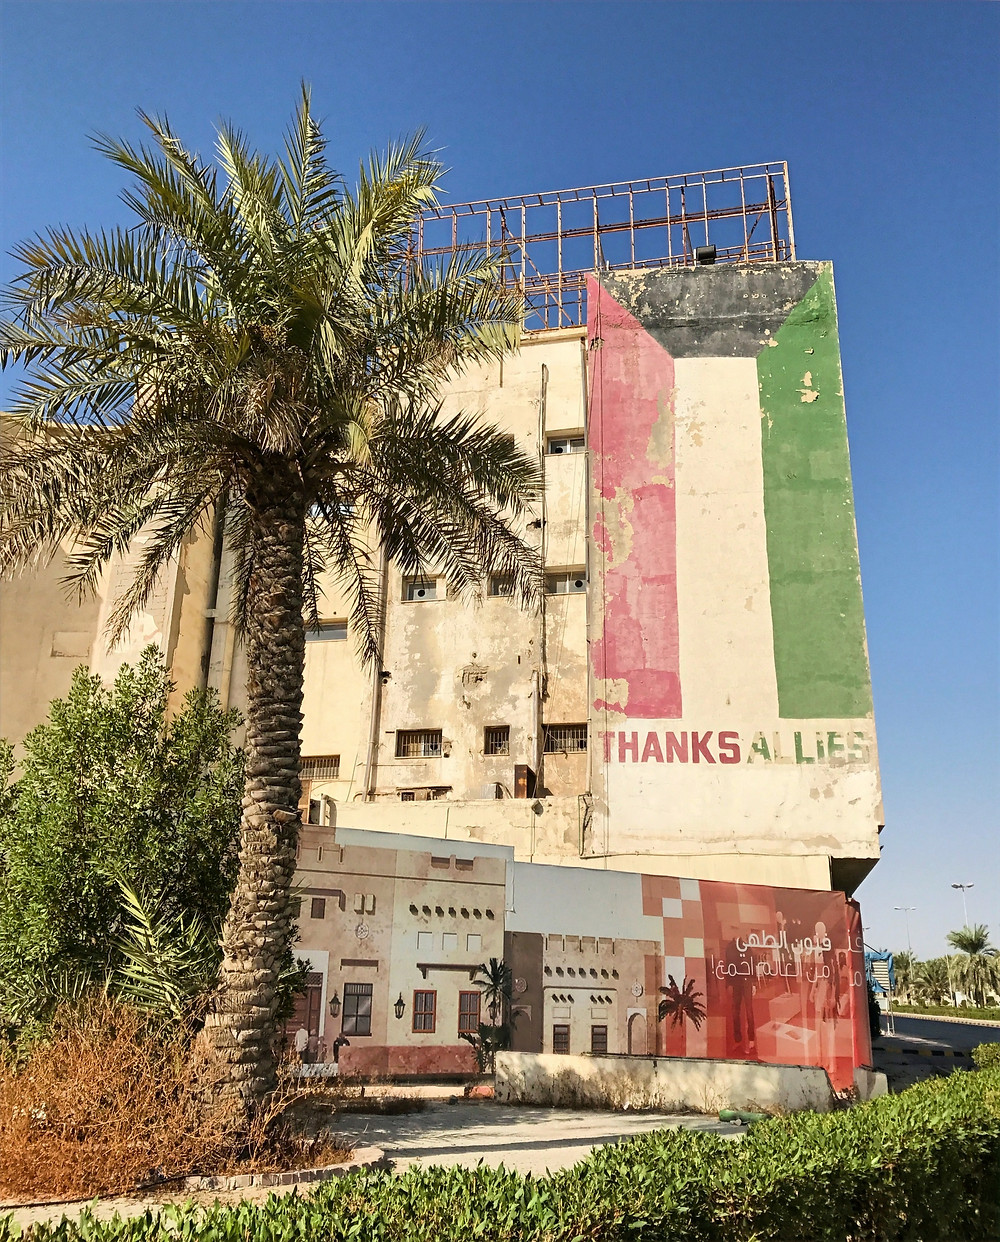 Thanks Allies mural street art Kuwait